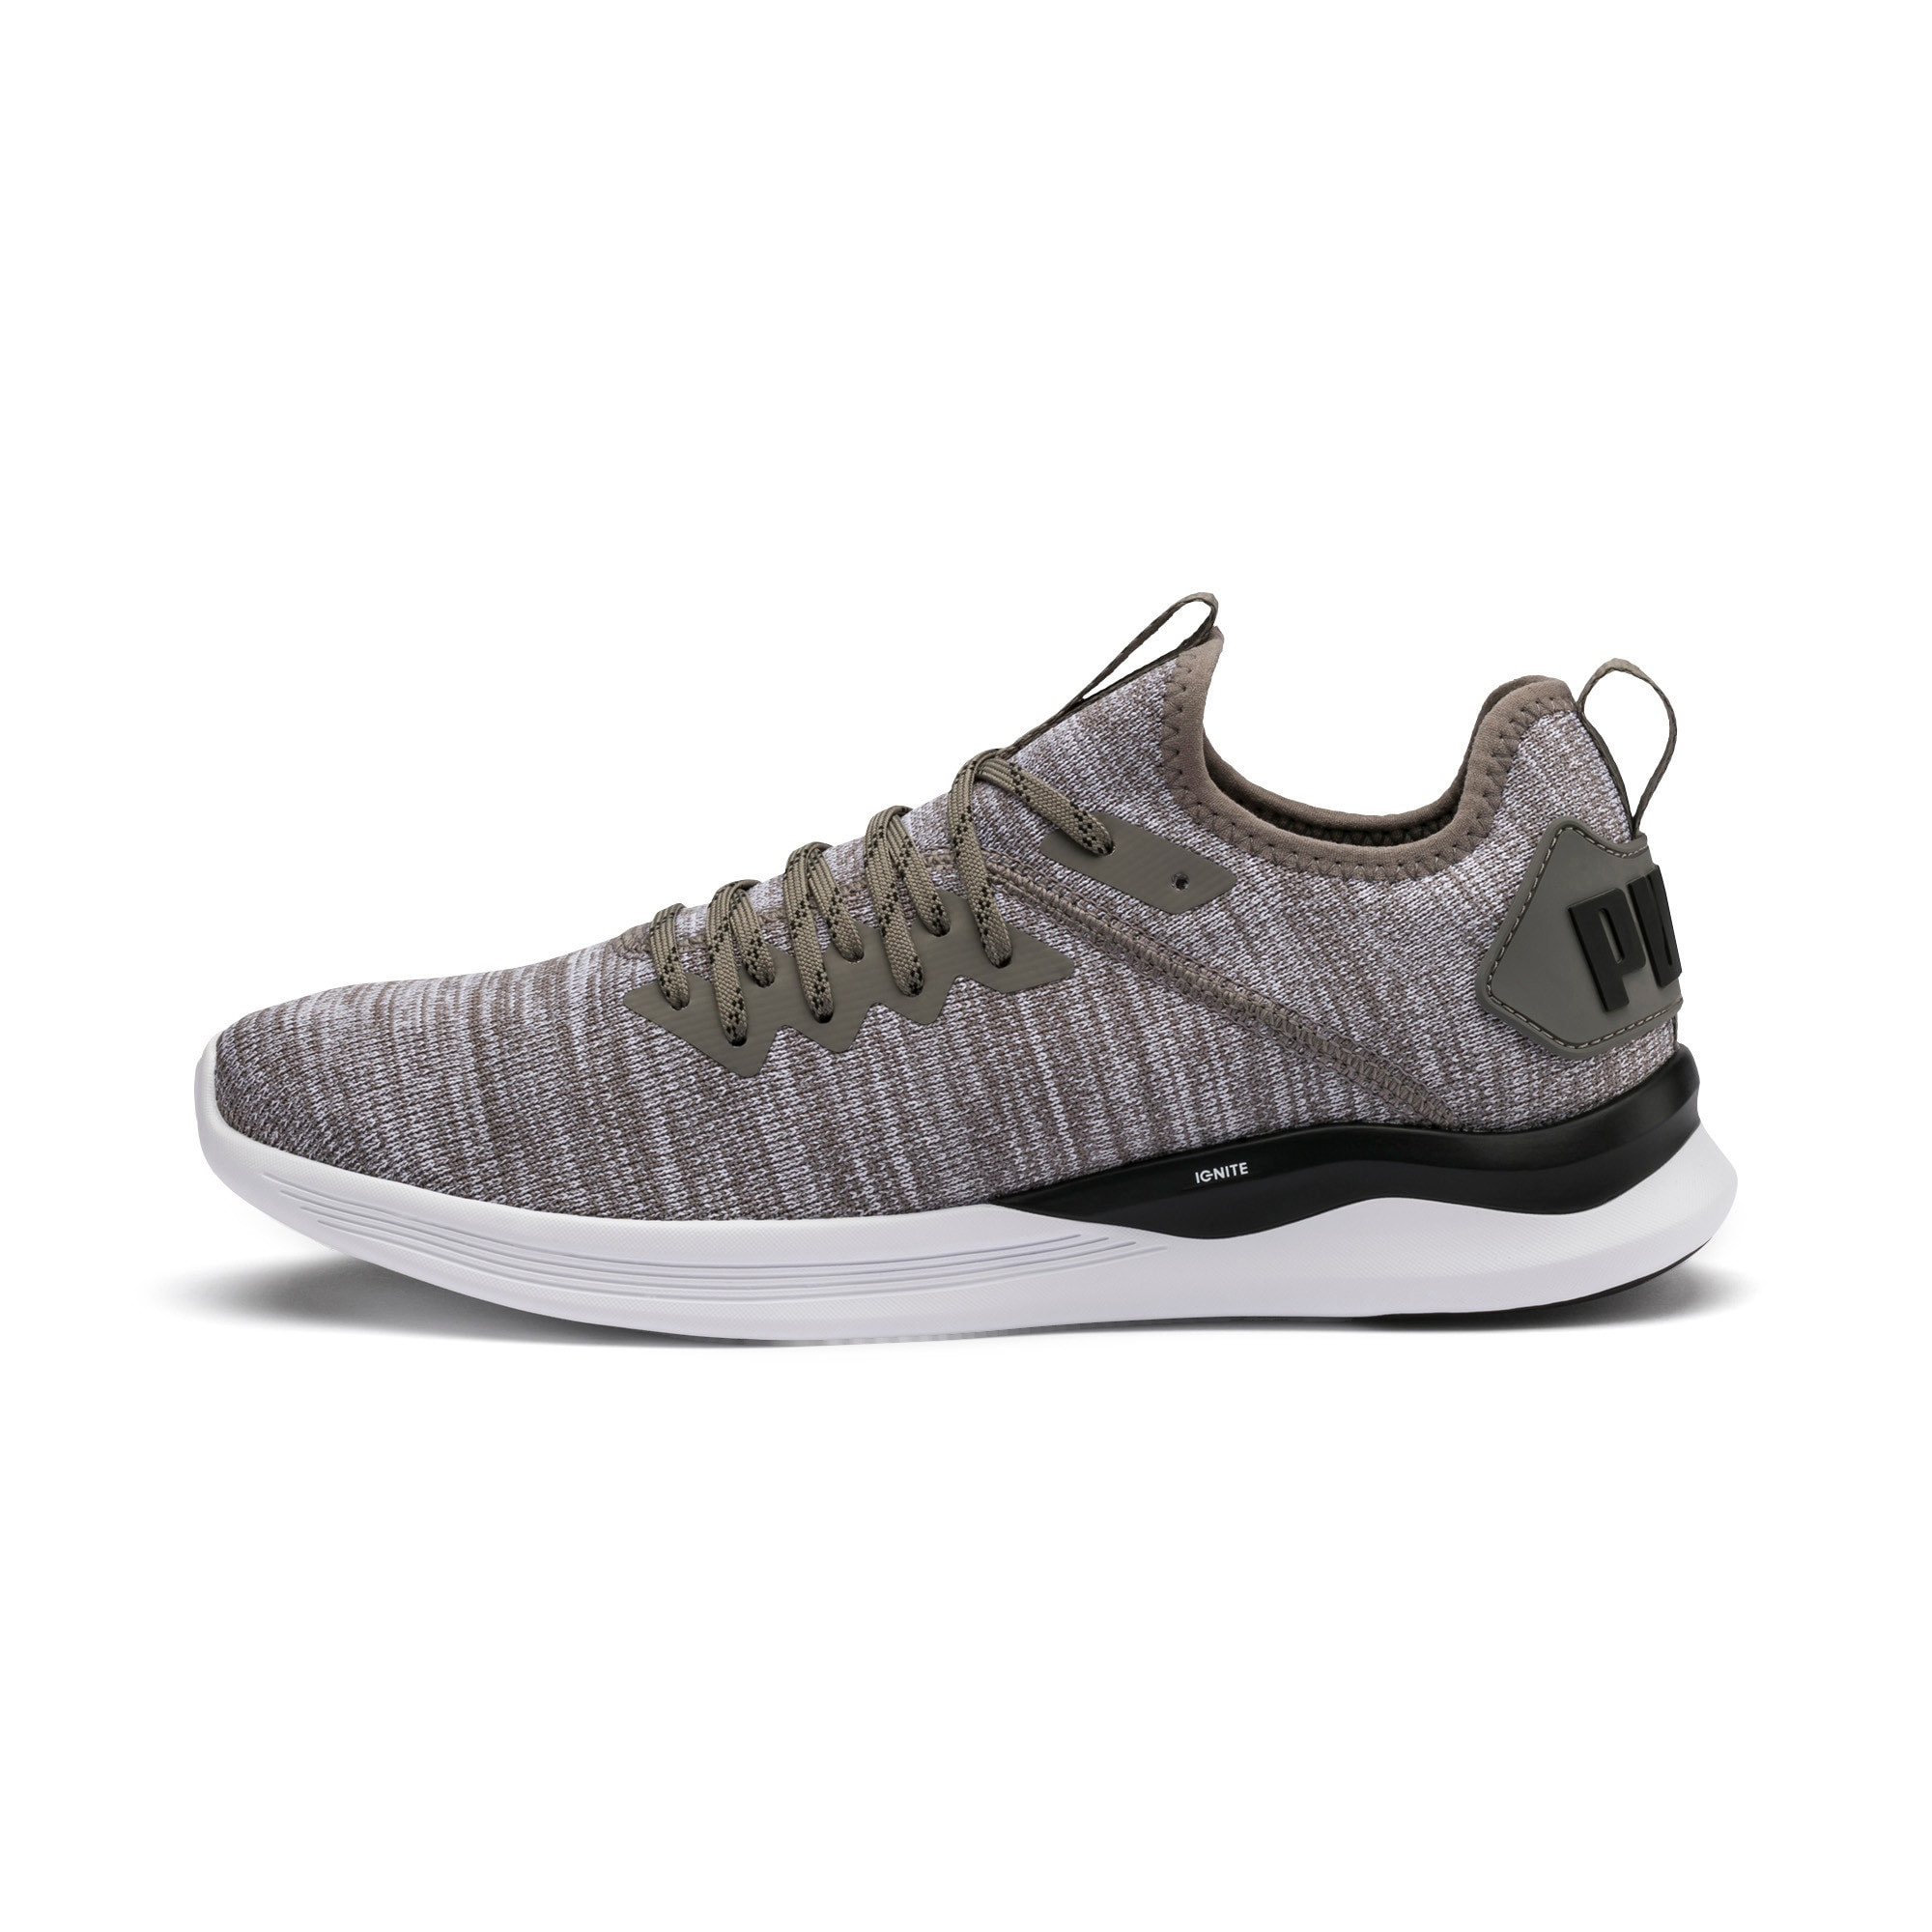 Thumbnail 1 of IGNITE Flash evoKNIT Men's Training Shoes, Steel Gray-Puma Black, medium-IND